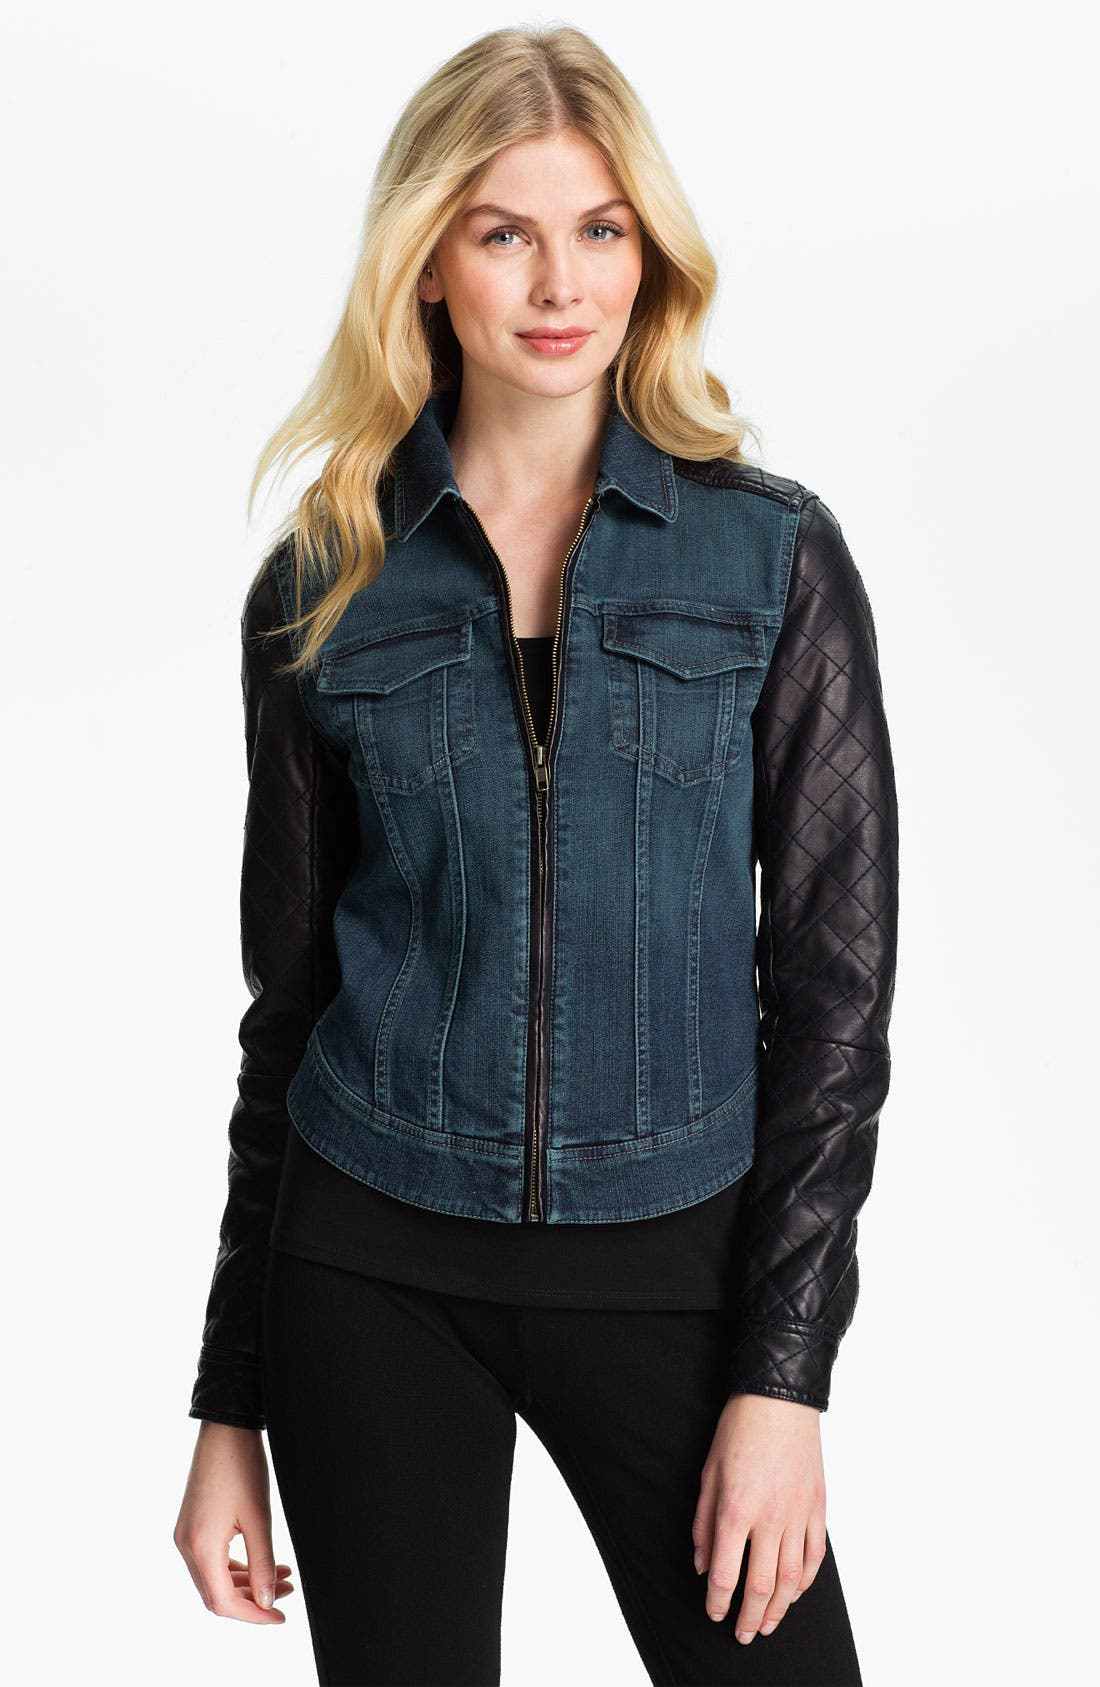 Alternate Image 1 Selected - Isaac Mizrahi Jeans 'Kimberly' Mix Media Jacket (Online Exclusive)